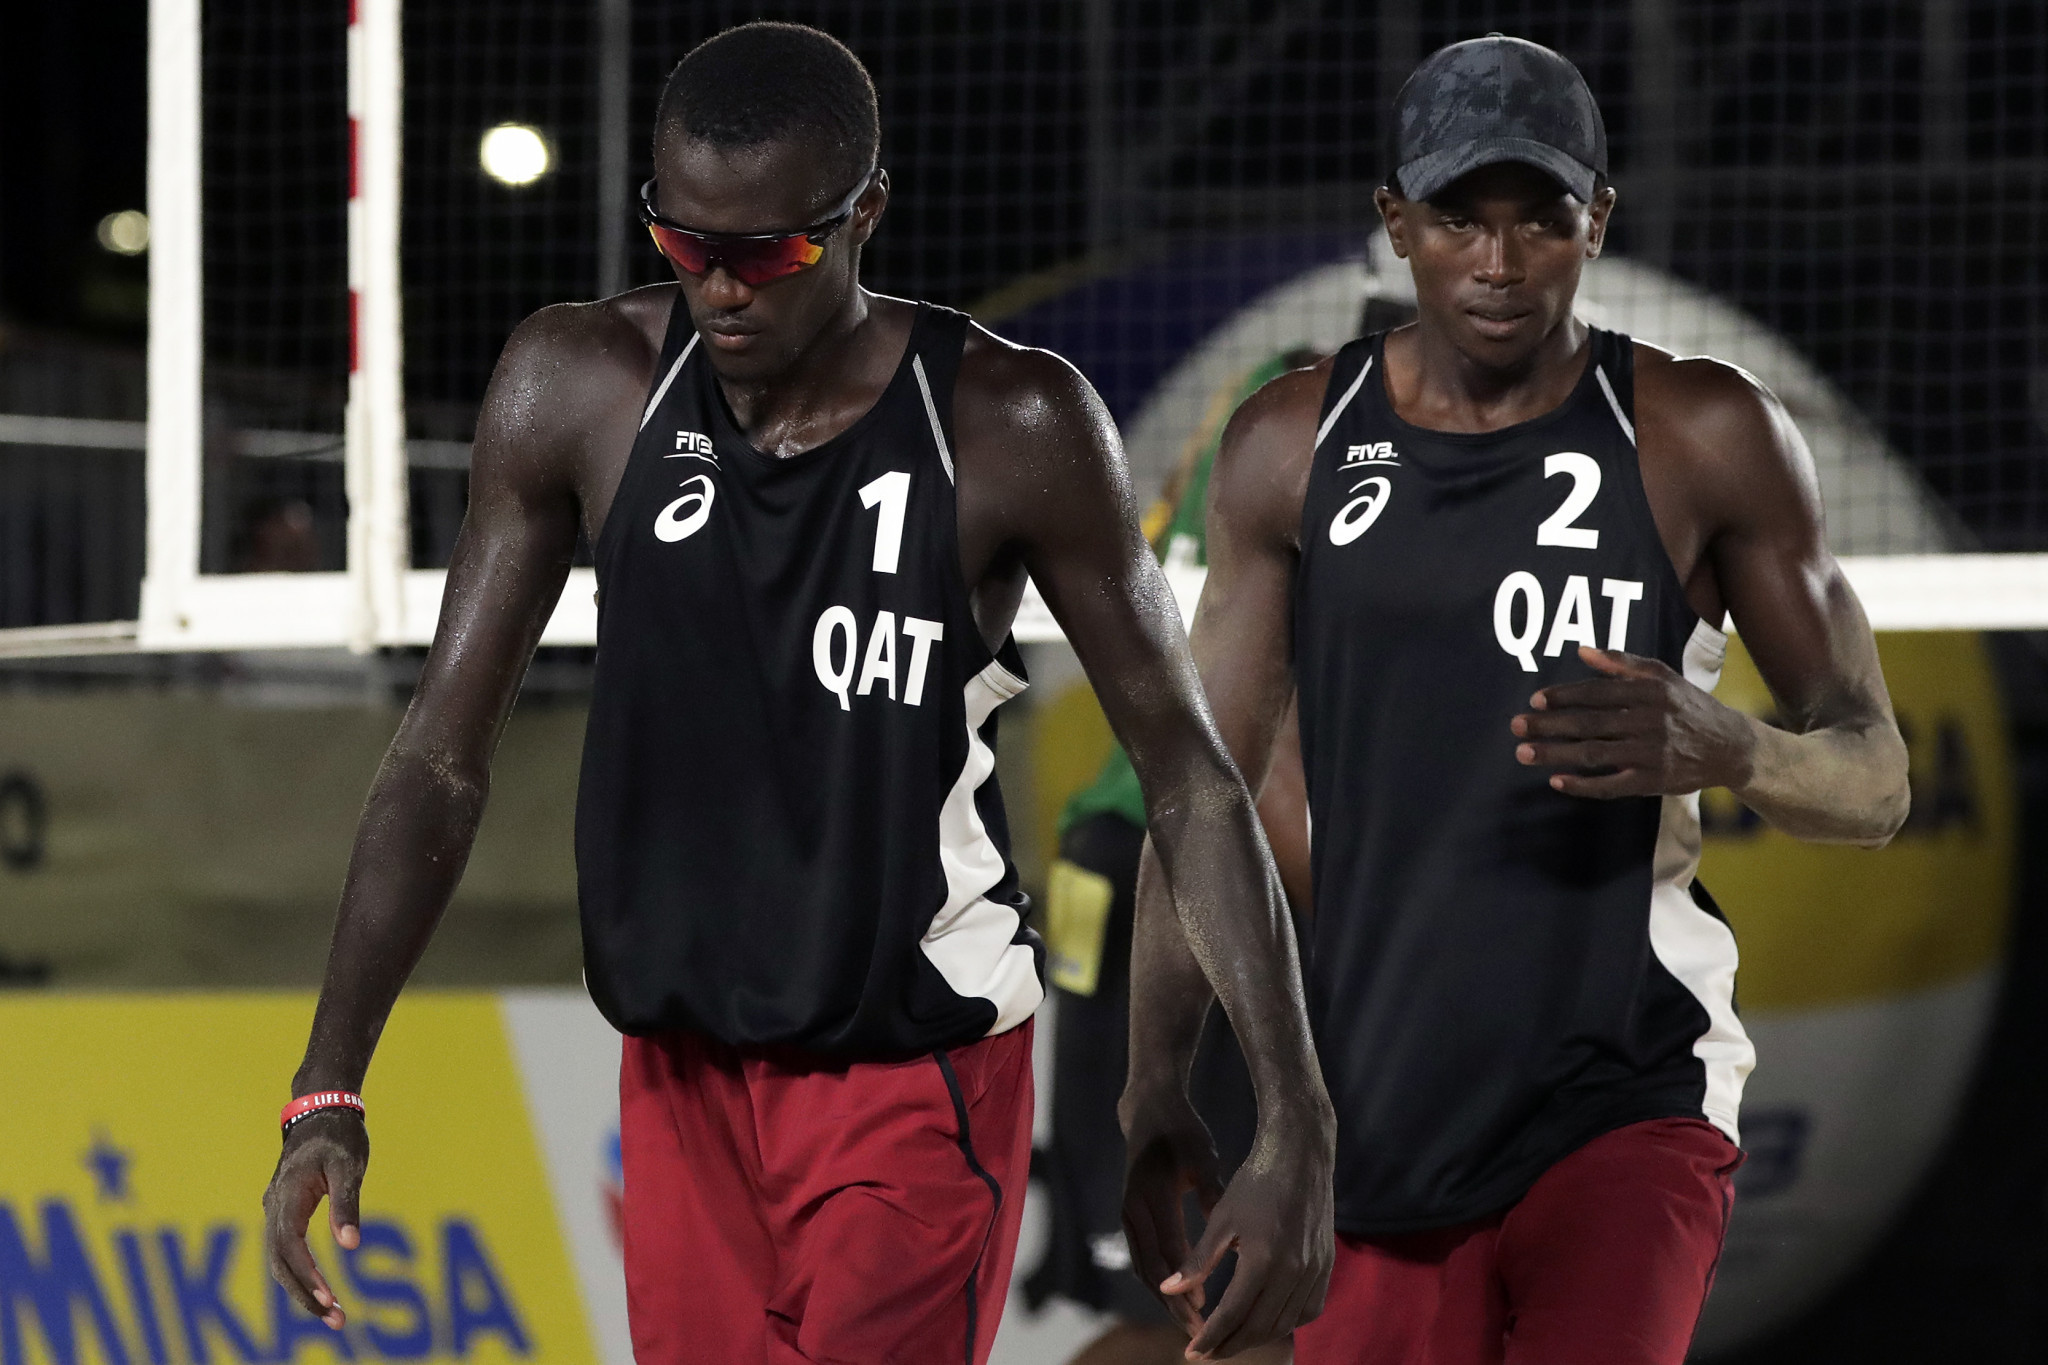 Qatar Beach Volleyball Team Ranked 2nd in Olympics Classification